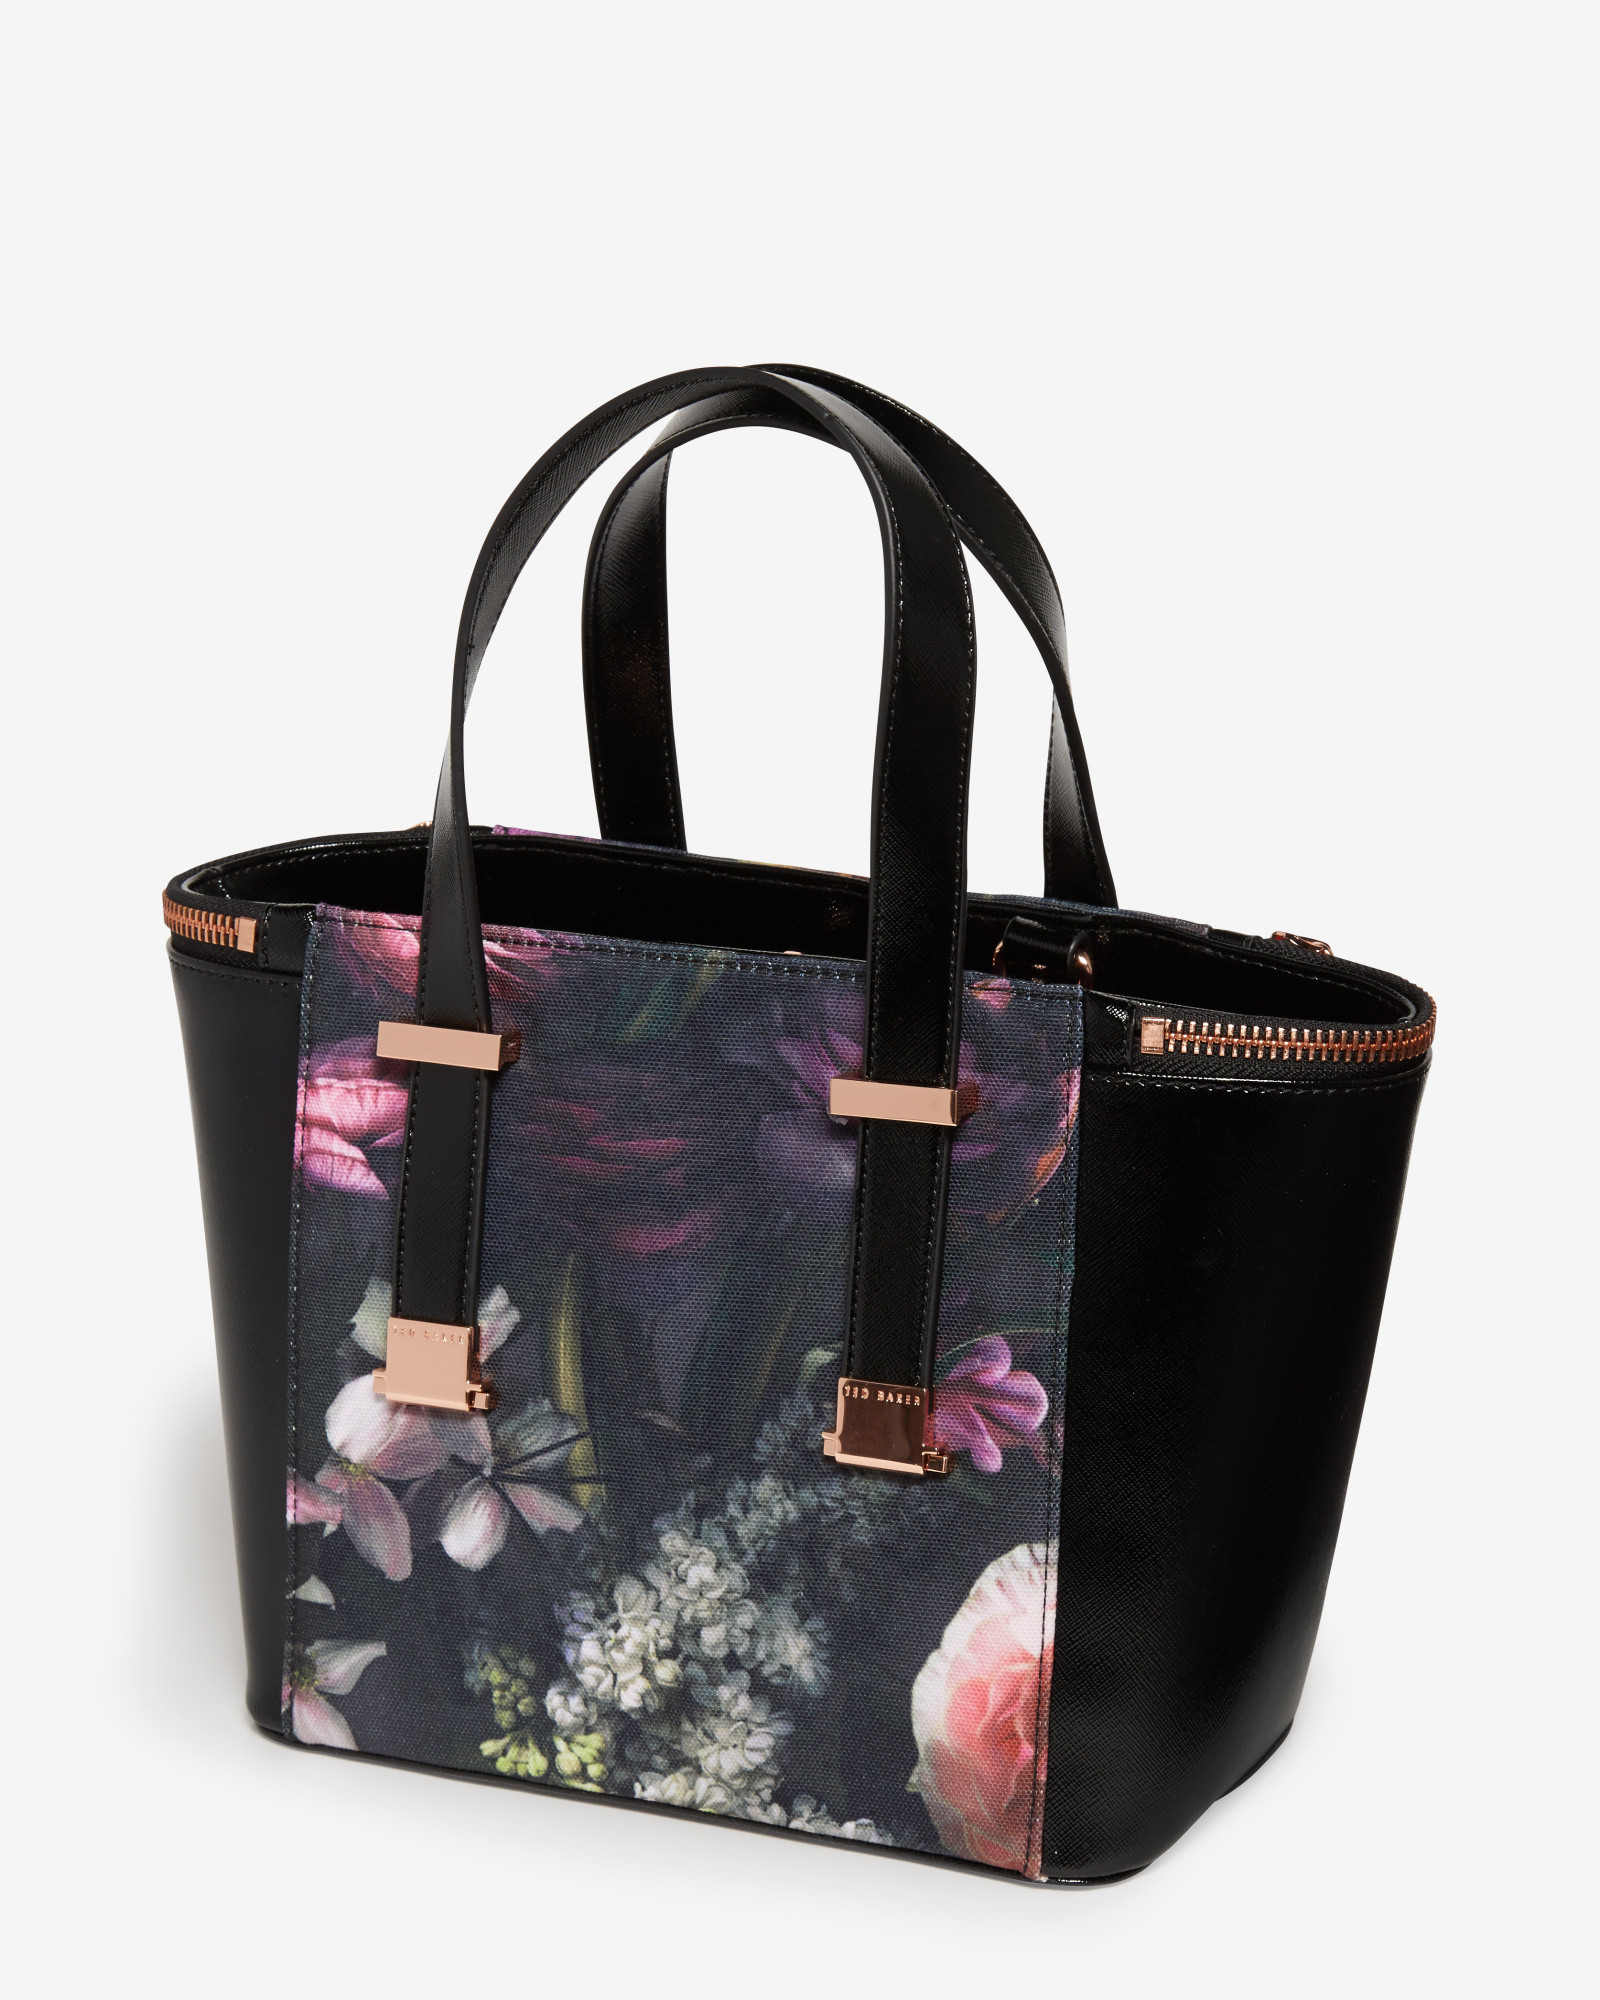 b7eefad05 Ted Baker Black Purse With Flowers Best Image Ccdbb. Bow Detail Leather Per  Bag. Women S Bags Handbags ...